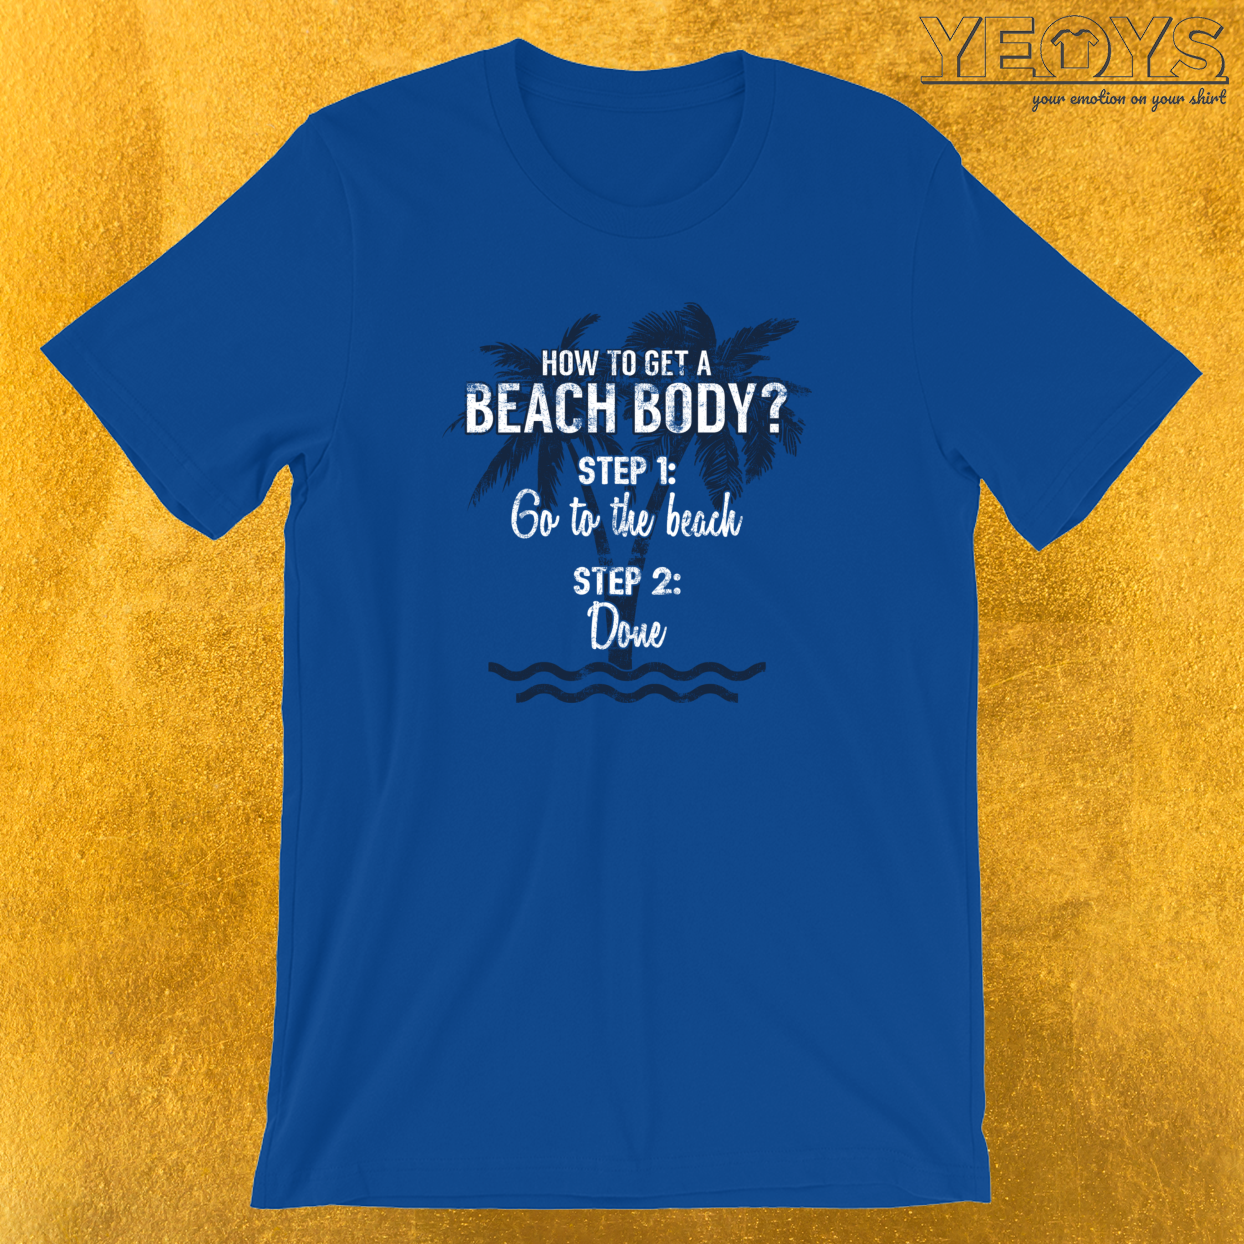 How To Get A Beach Body? T-Shirt